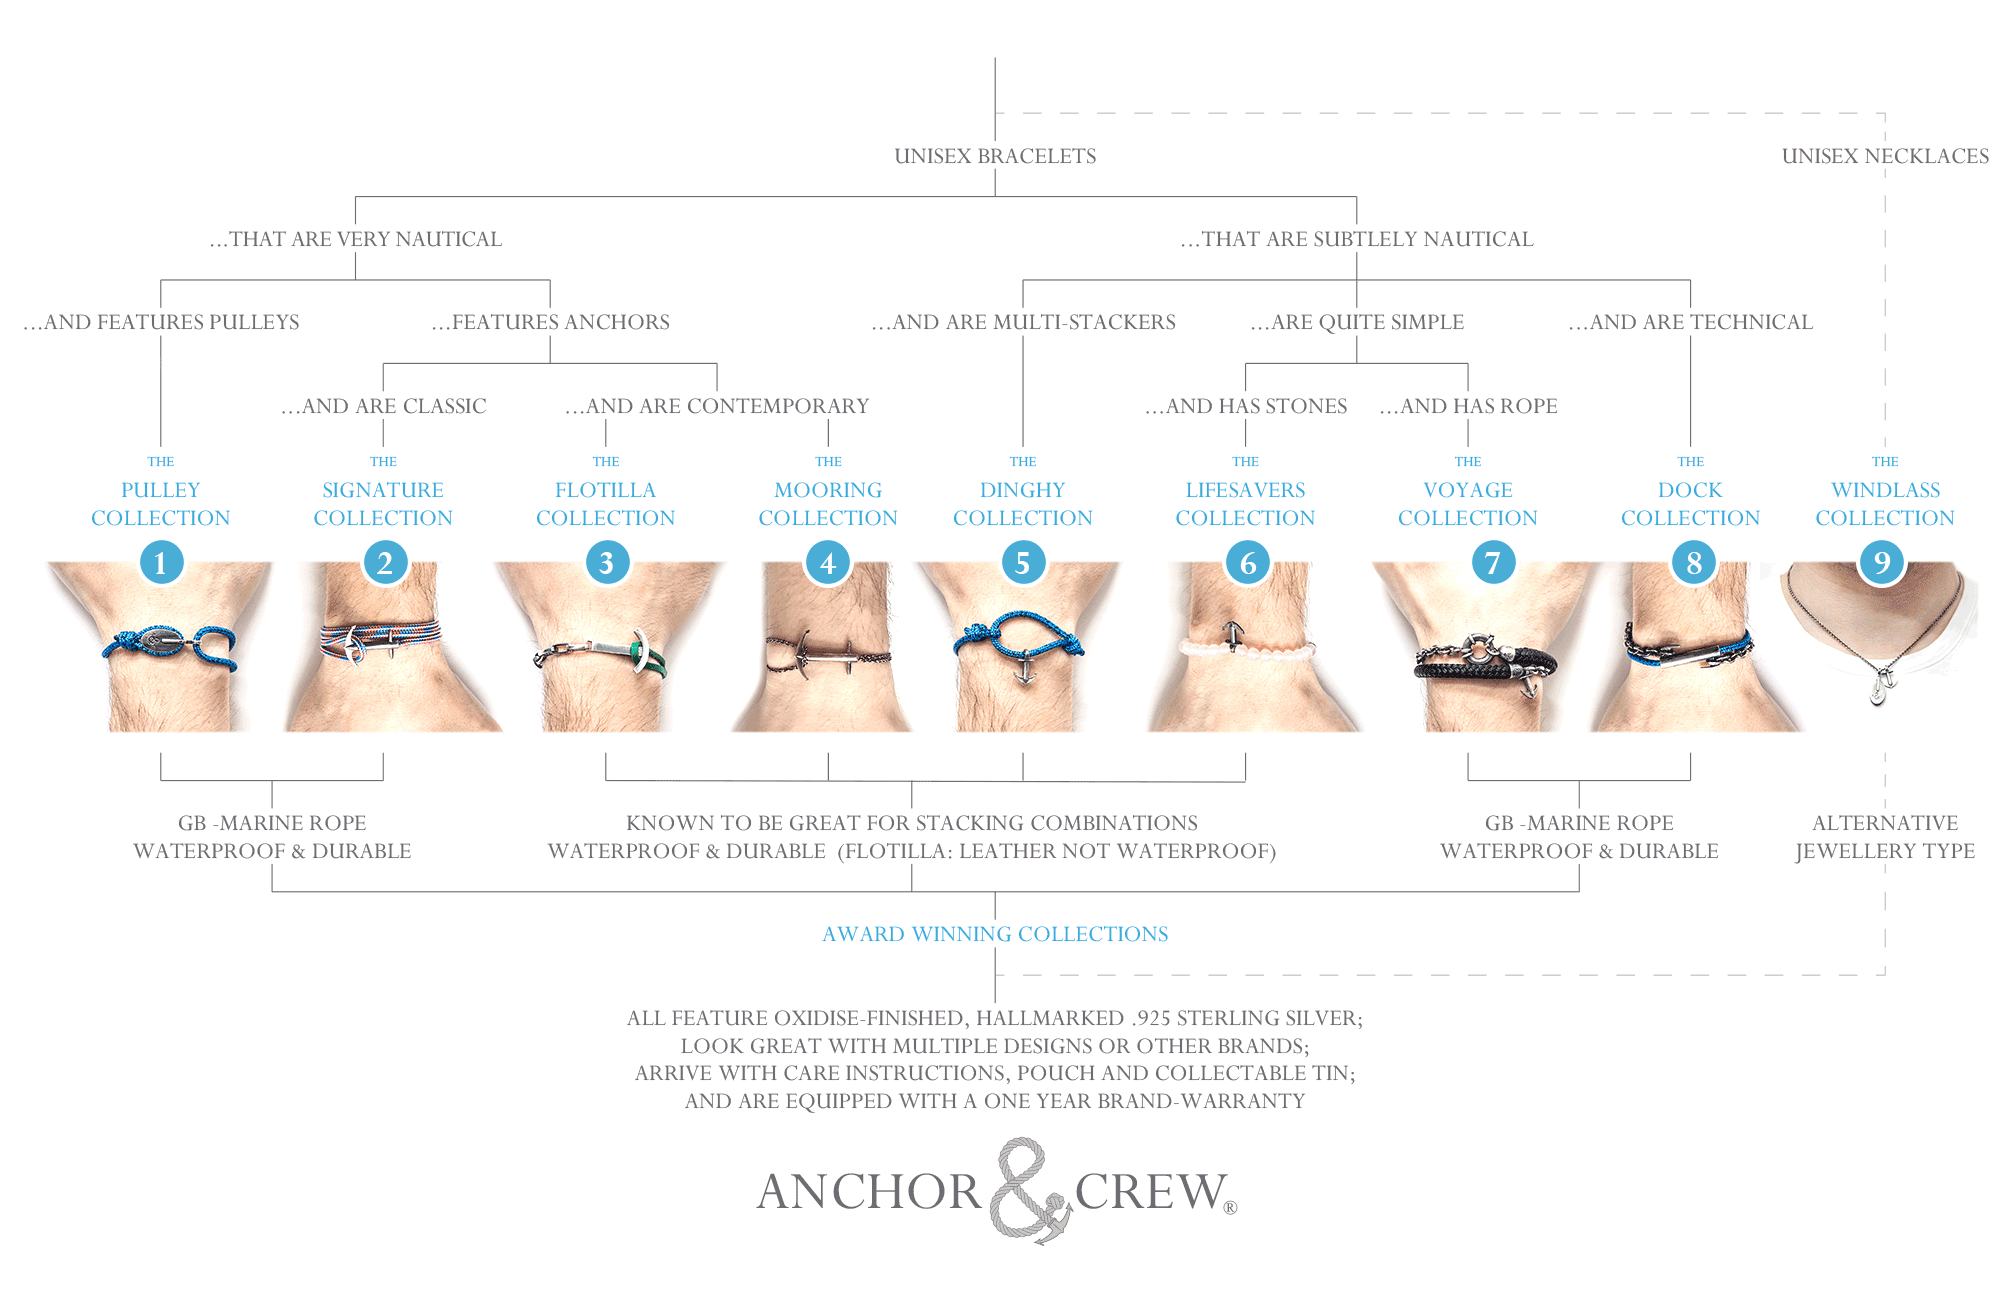 Anchor And Crew Rope And Anchor Bracelet, Bangle and Necklace Choice Guide